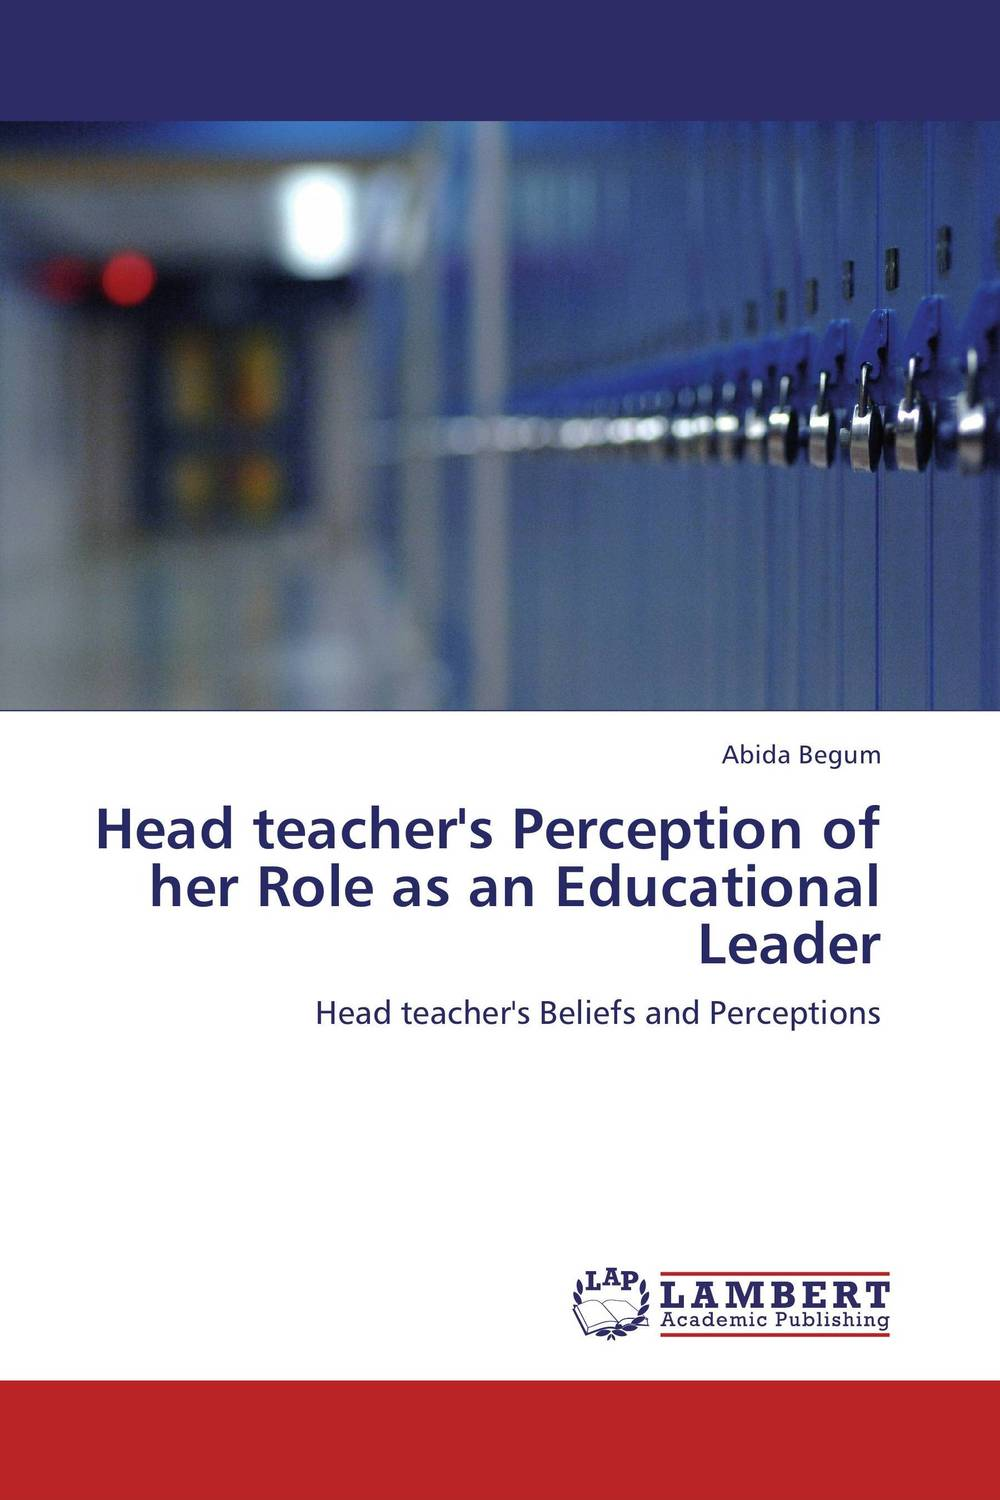 Head teacher's Perception of her Role as an Educational Leader role of school leadership in promoting moral integrity among students